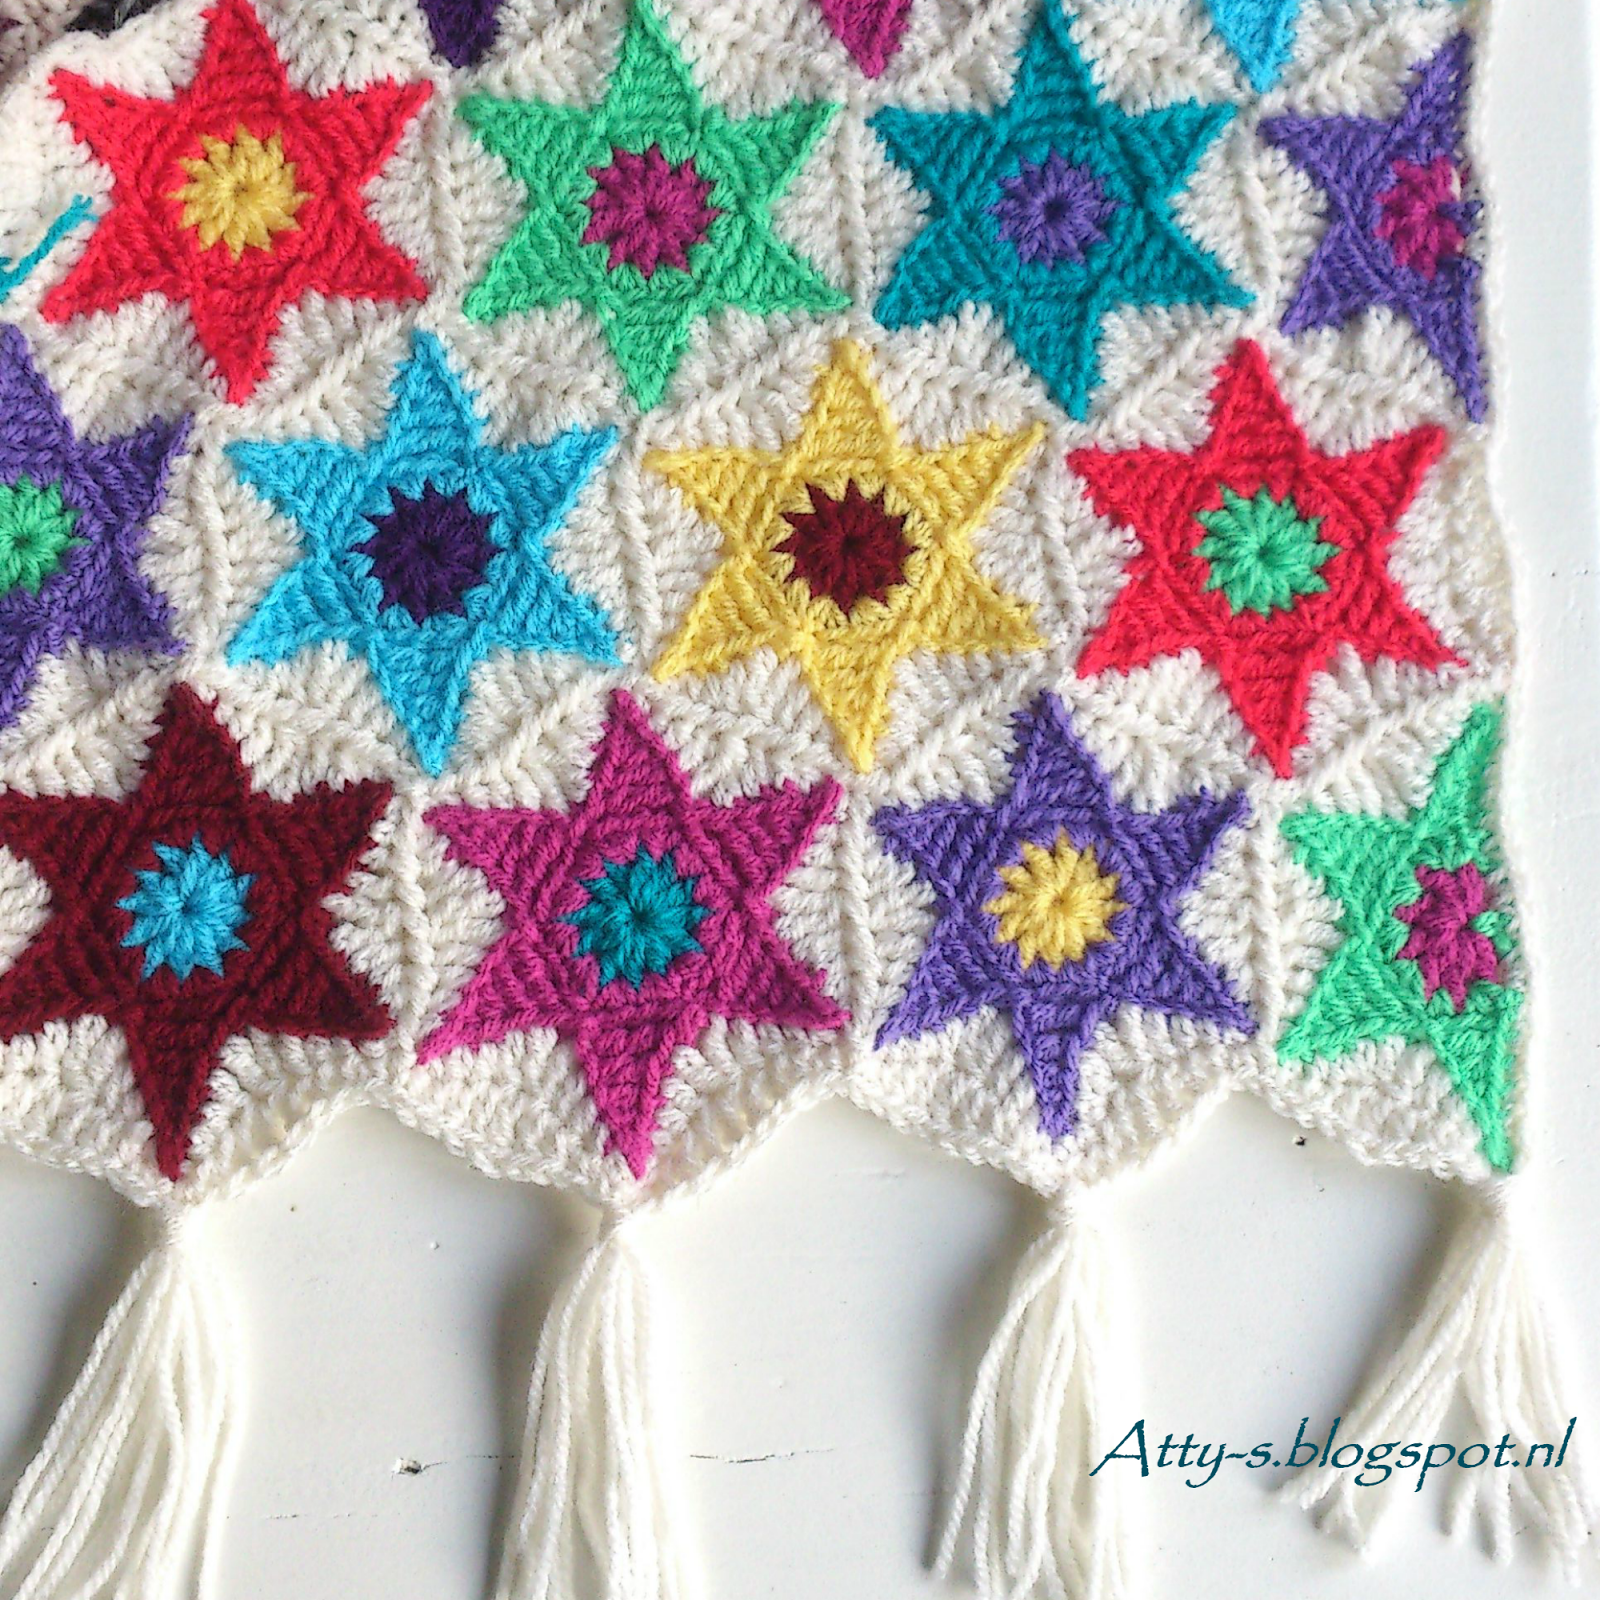 Crochet star hexagon httpsfacebookattysloveforcrochet half star hexagon free pattern by attys in english and dutch bankloansurffo Images